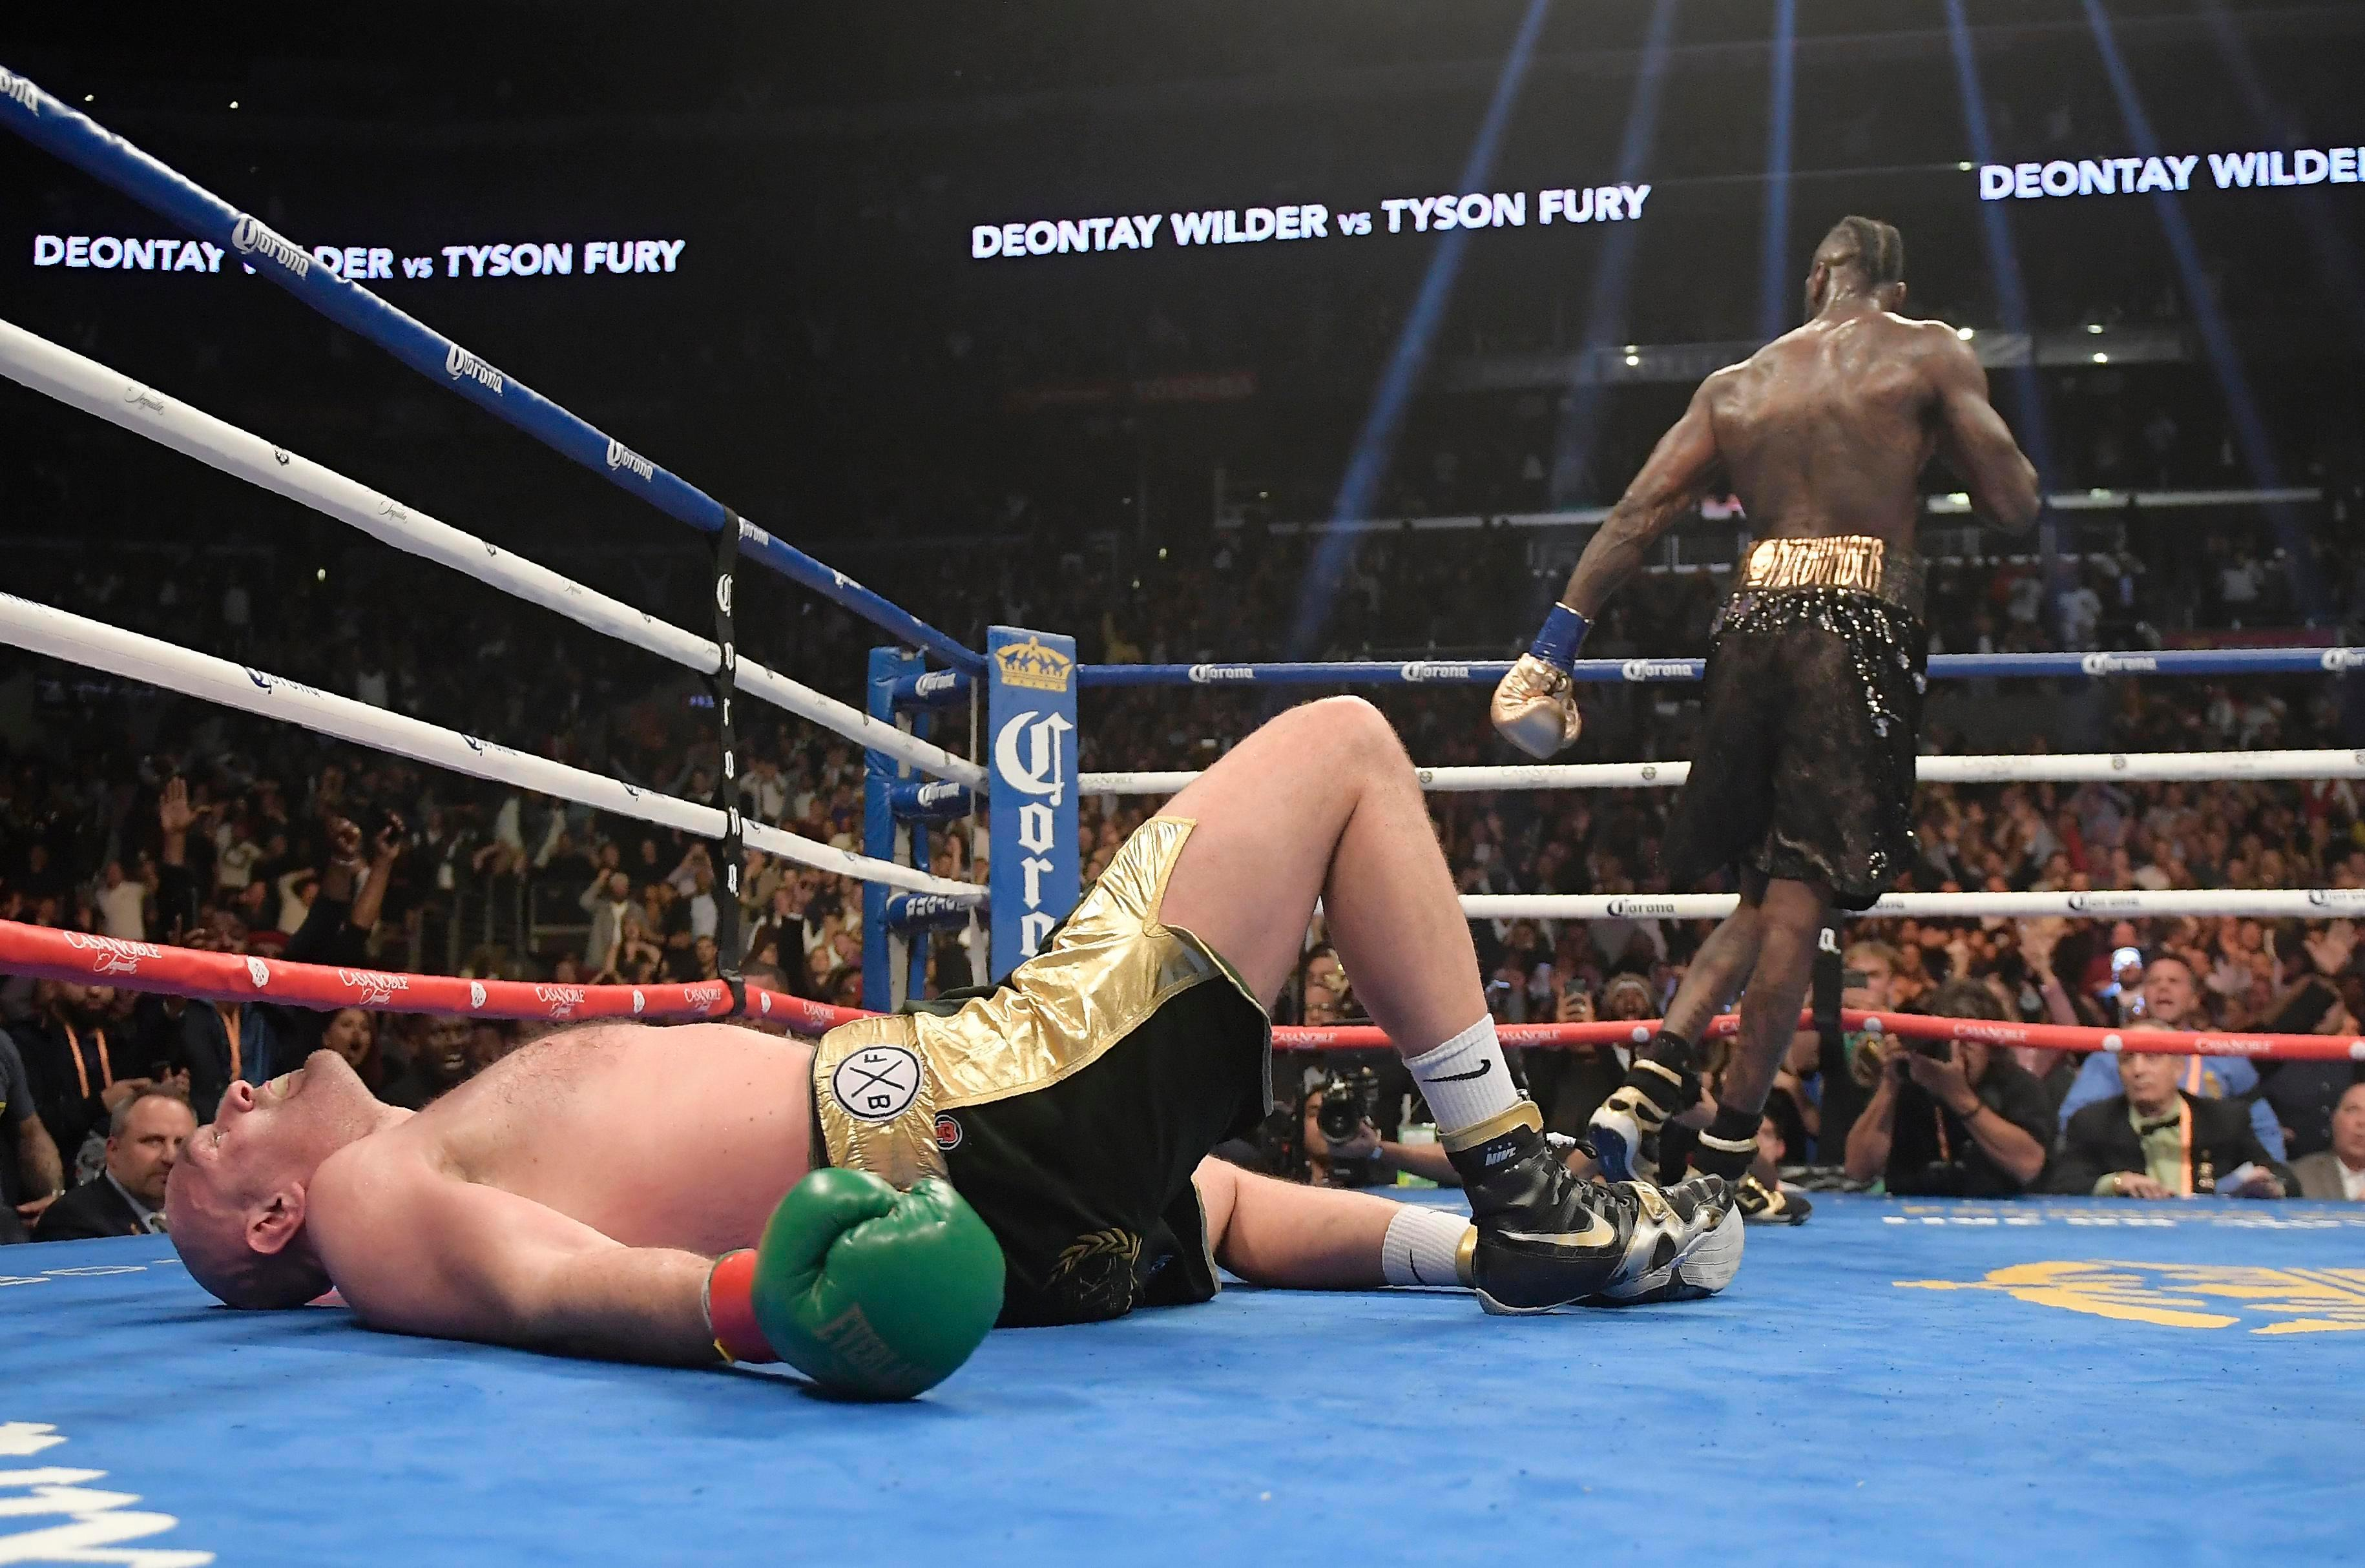 Deontay Wilder reveals 'video proof' Tyson Fury didn't beat 10 count as WBC king seeks incredible trilogy of fights